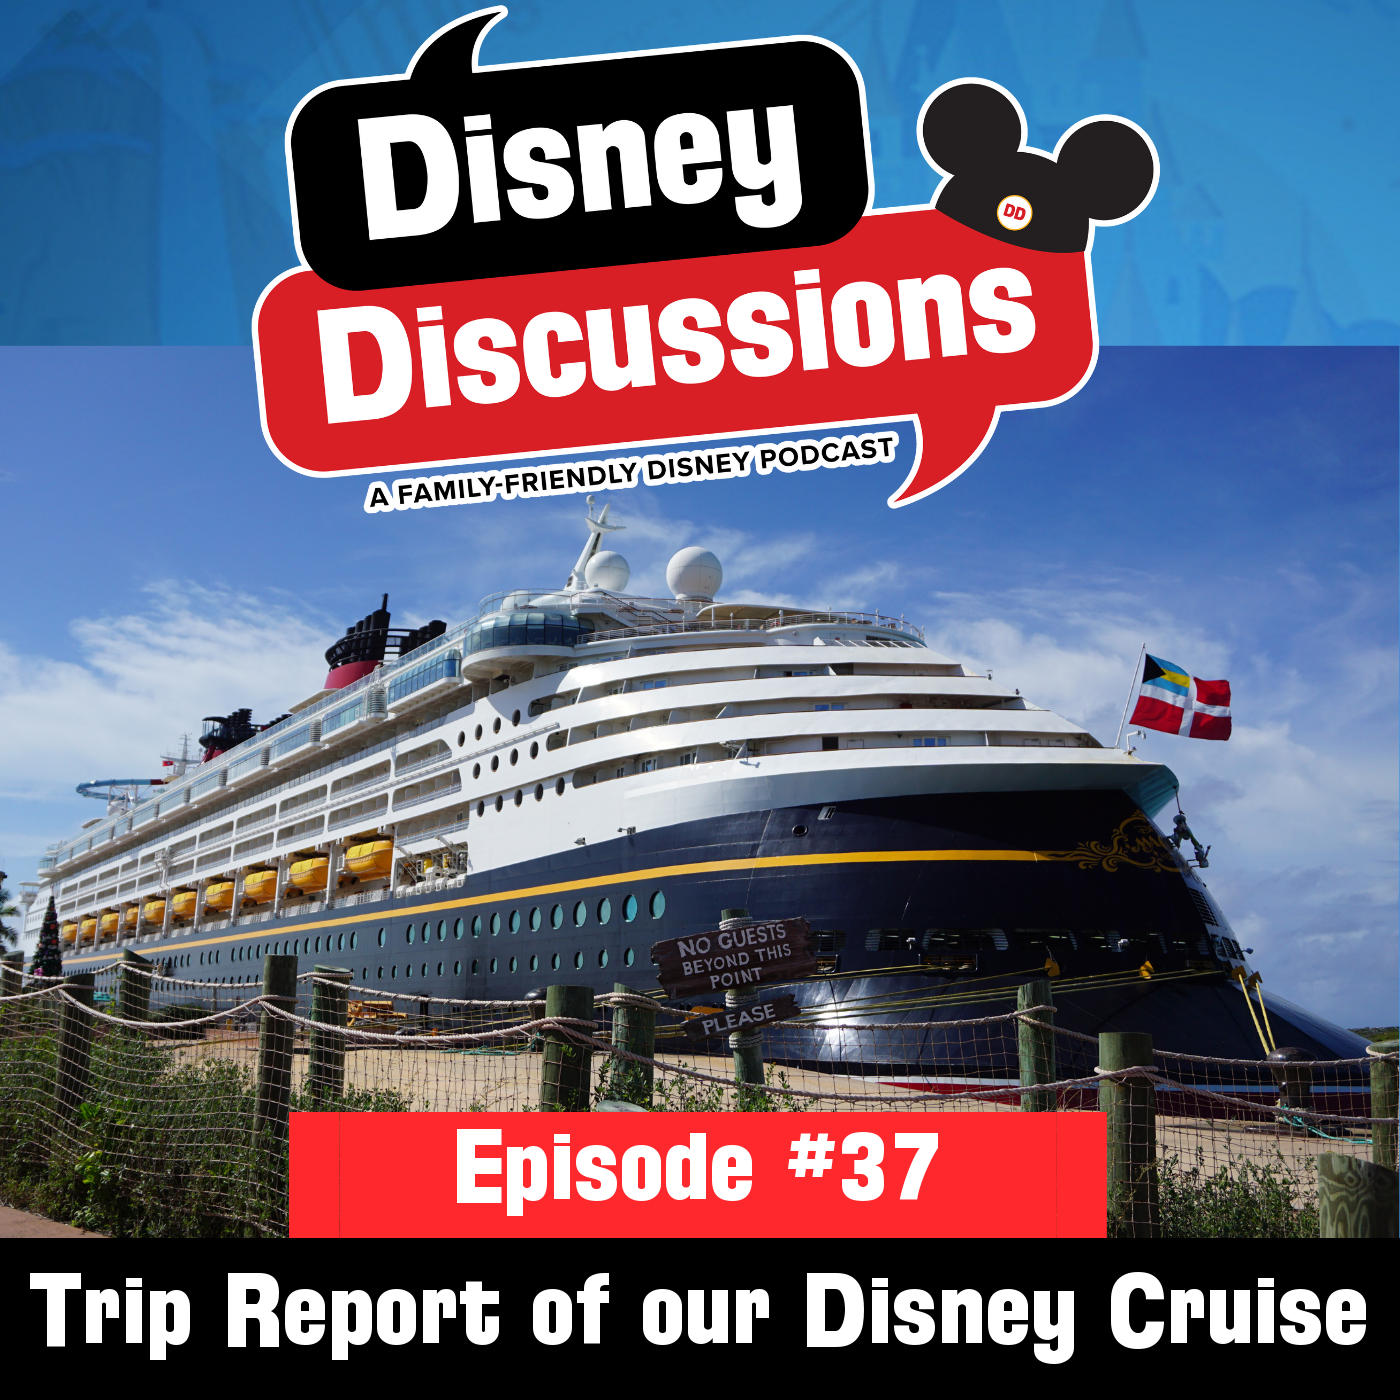 Trip report of our First Disney Cruise